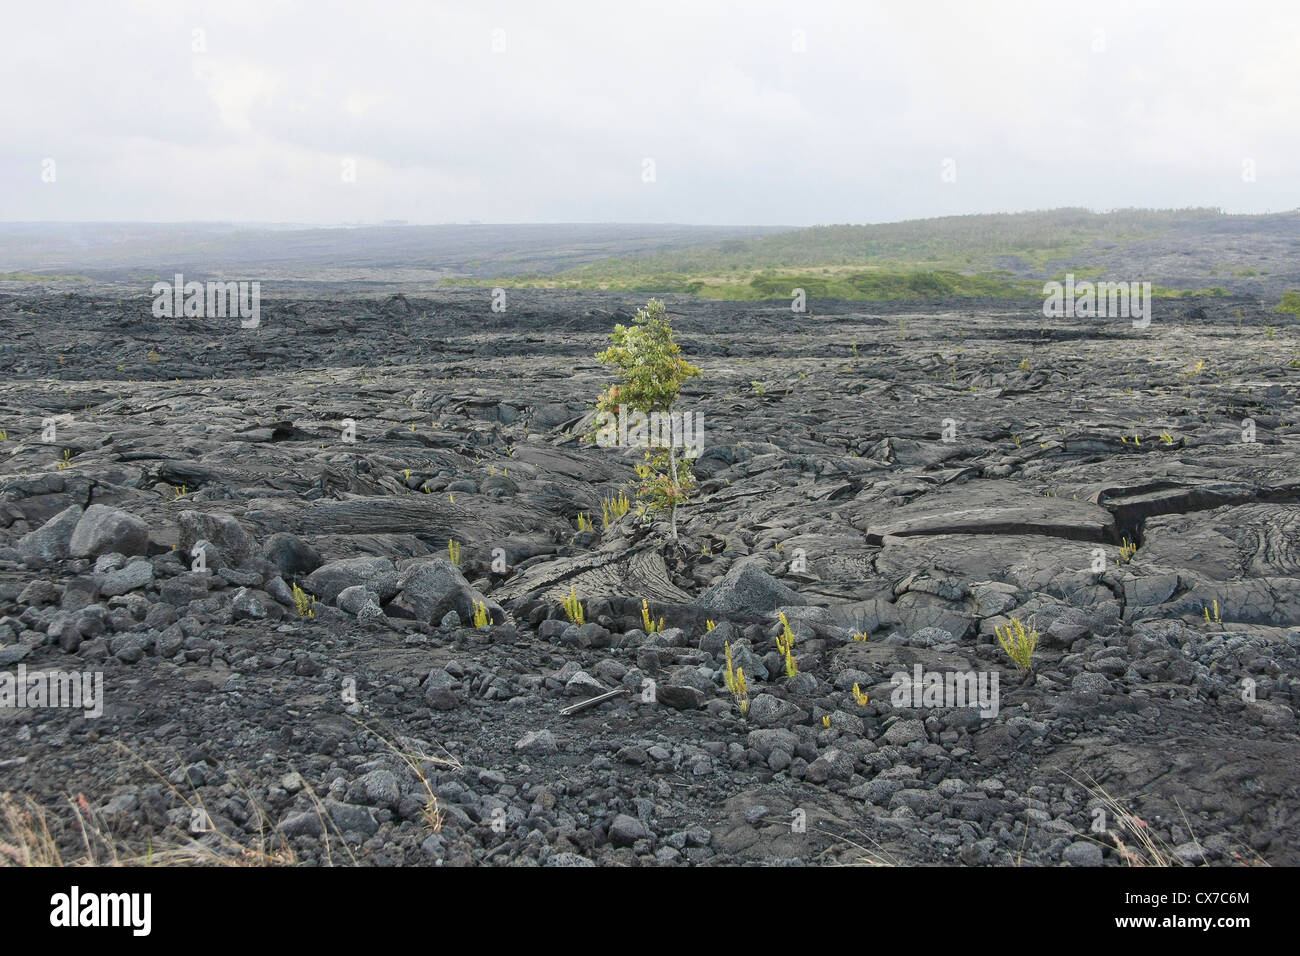 Vegetation superbly adapted to sulfur dioxide emissions of volcanoes in Hawaii. - Stock Image